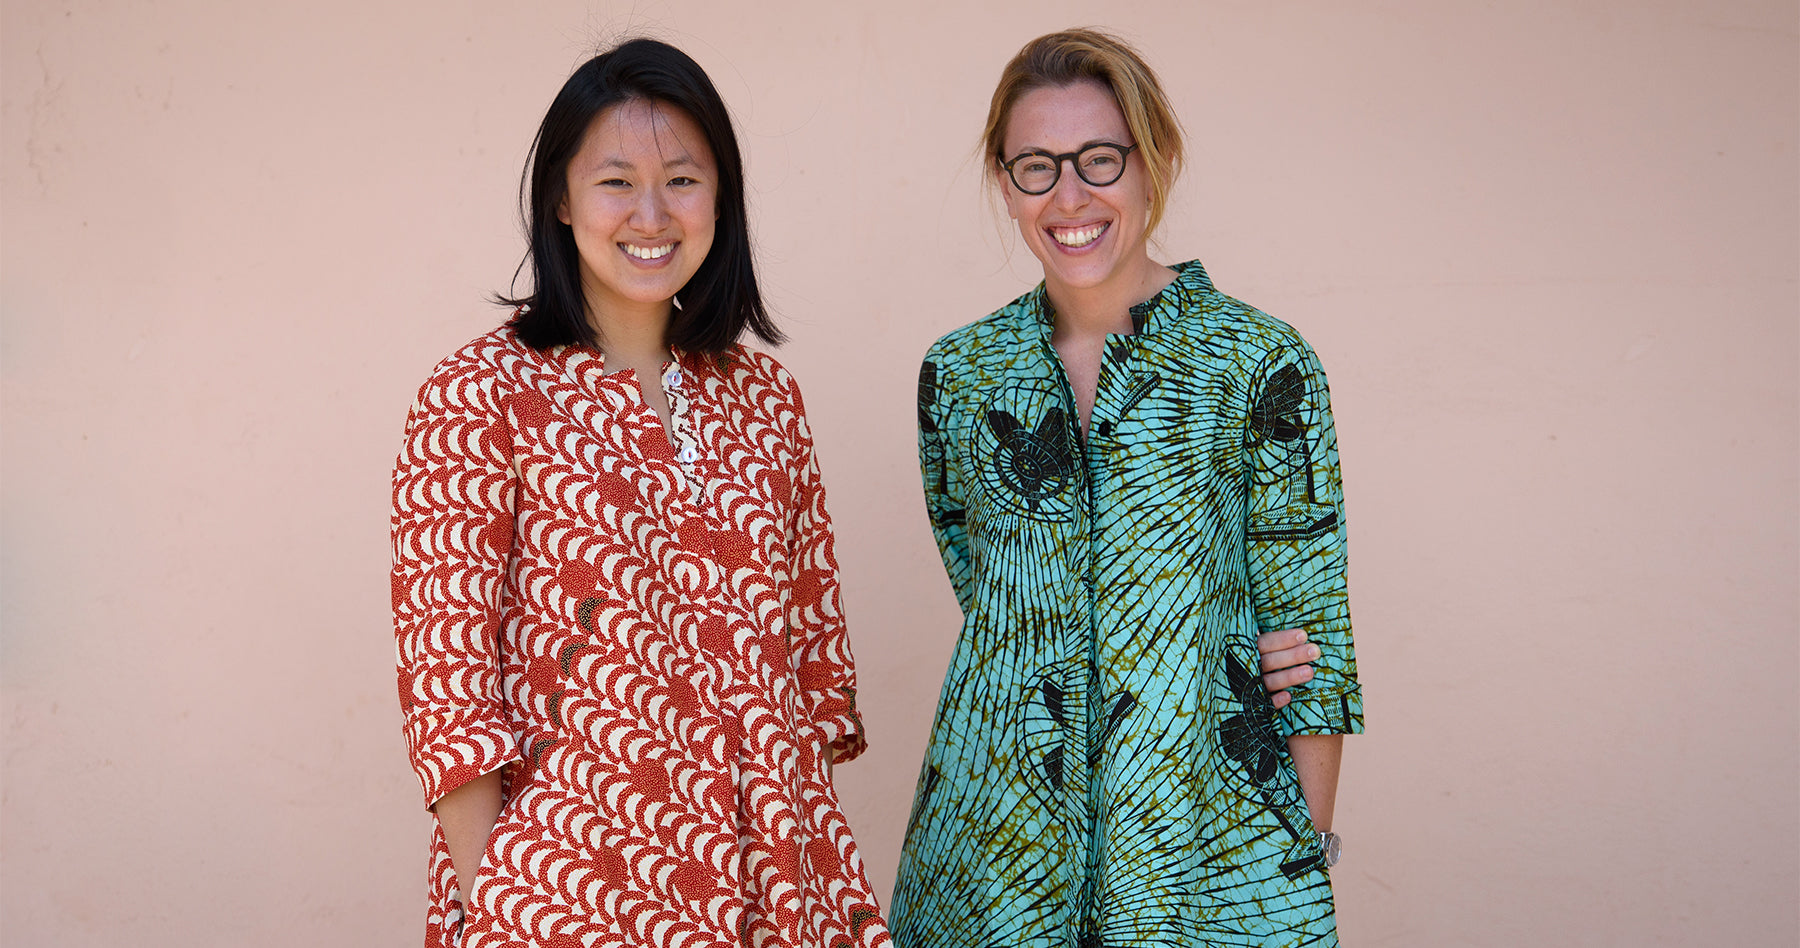 The Founders of Zuri Dress, Ashleigh Gersh Miller and Sandra Zhao